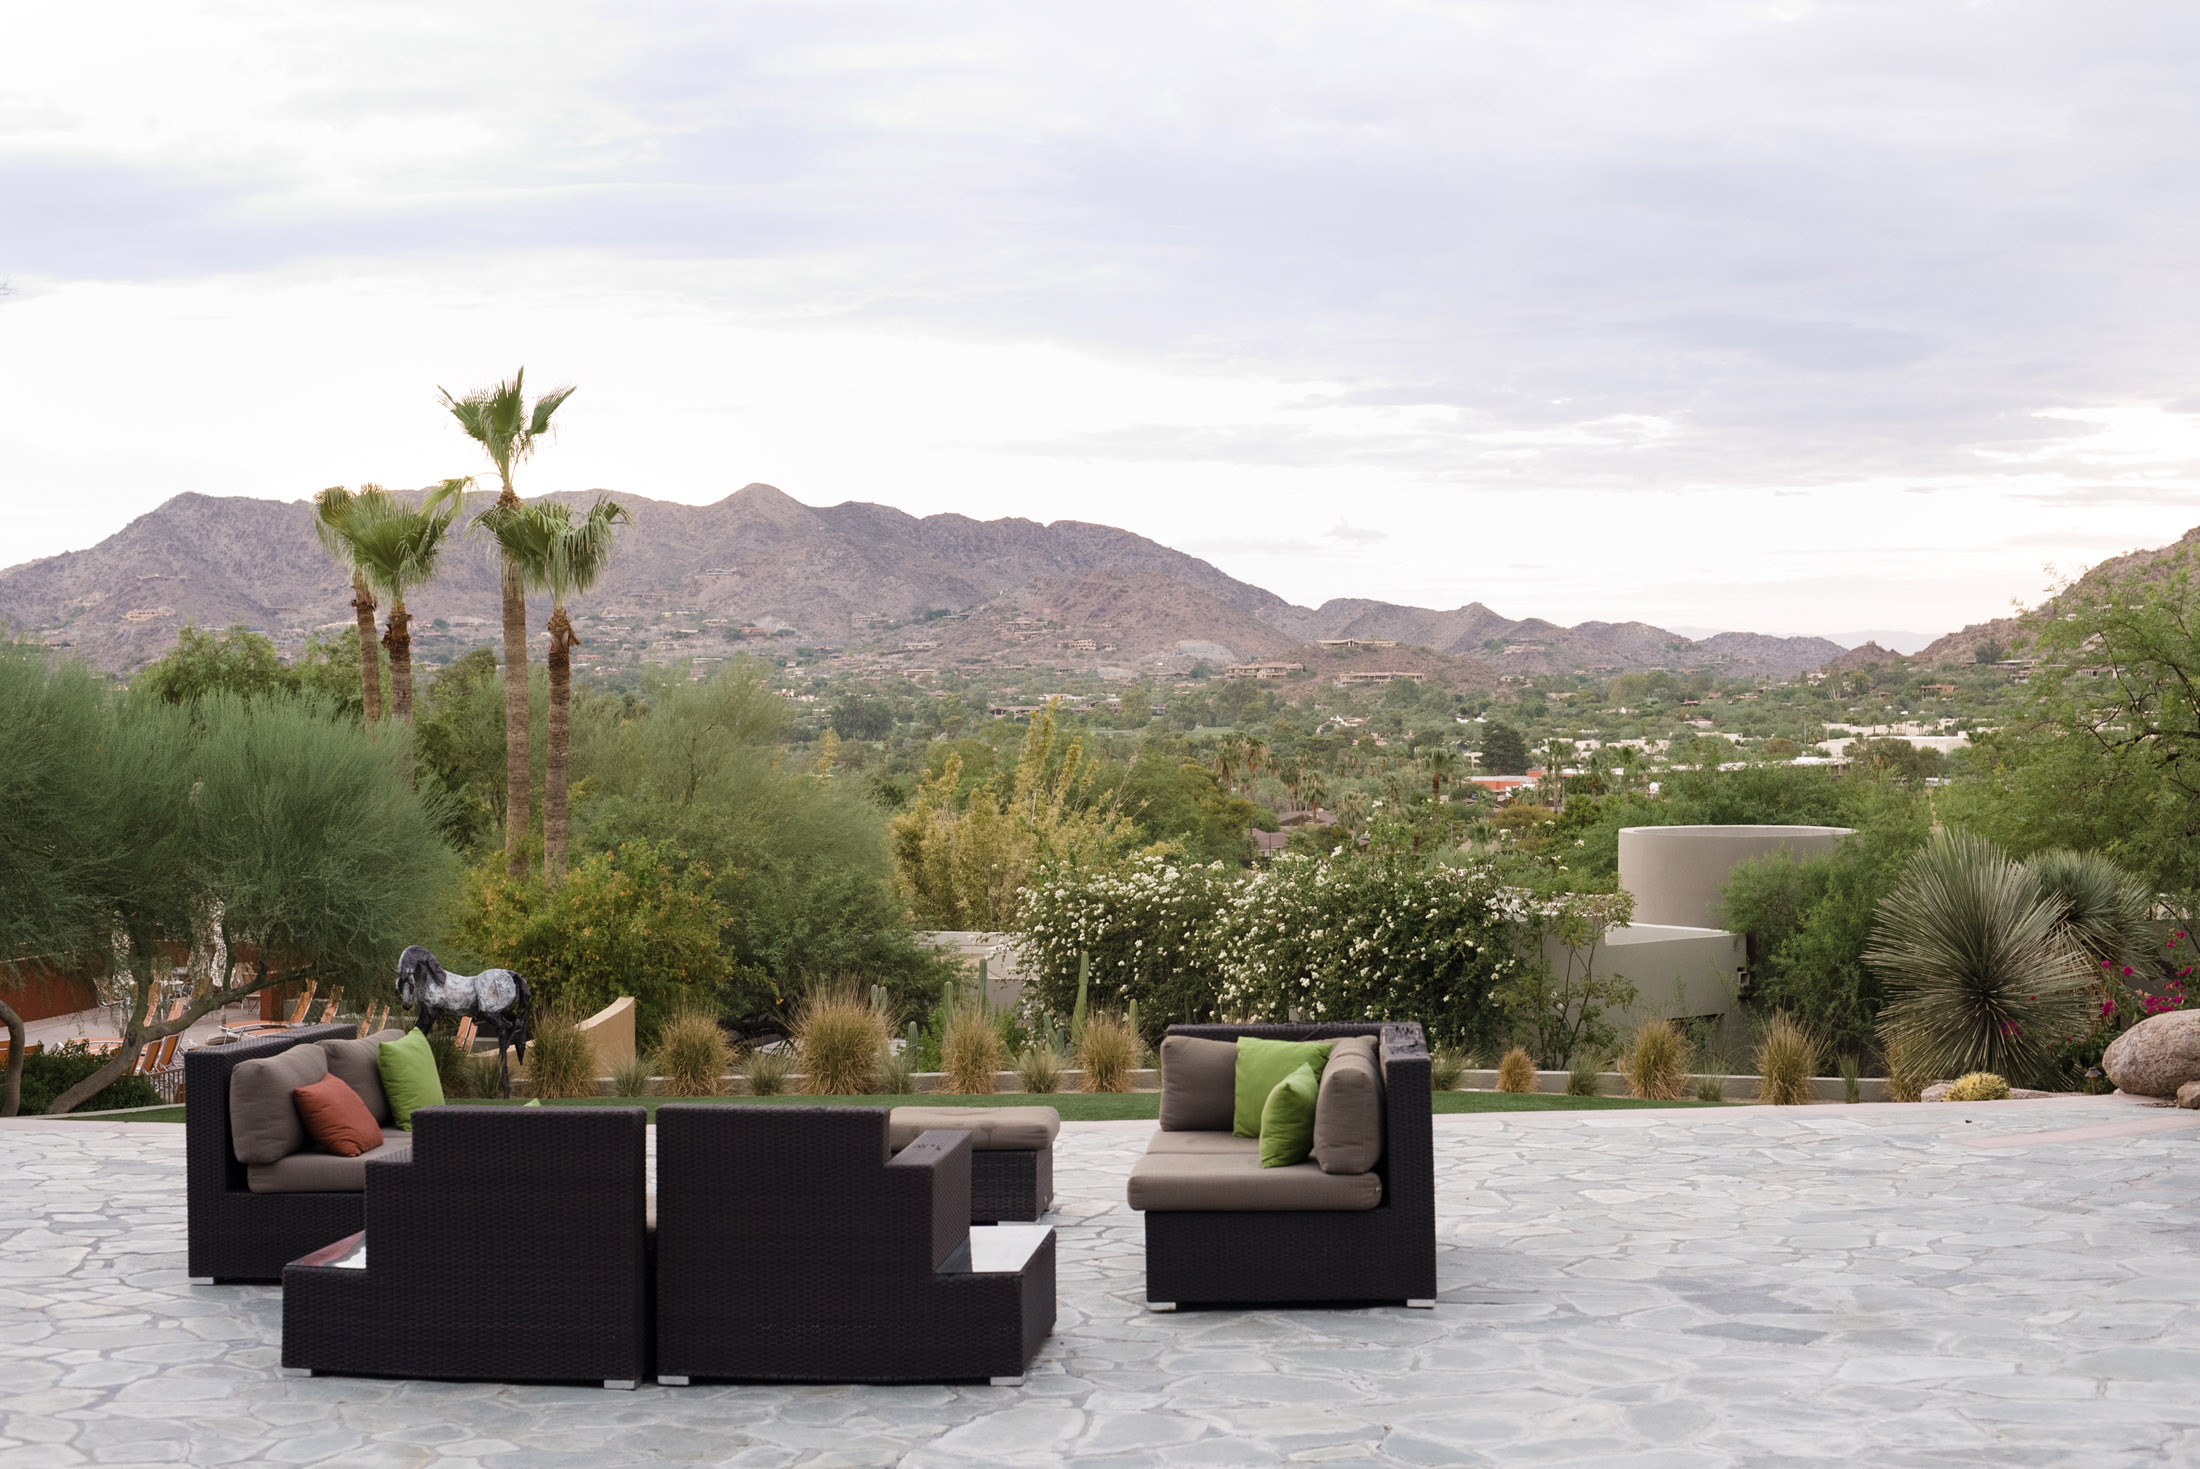 Luxury Destination Weddings in Scottsdale at the Camelback Sanctuary.